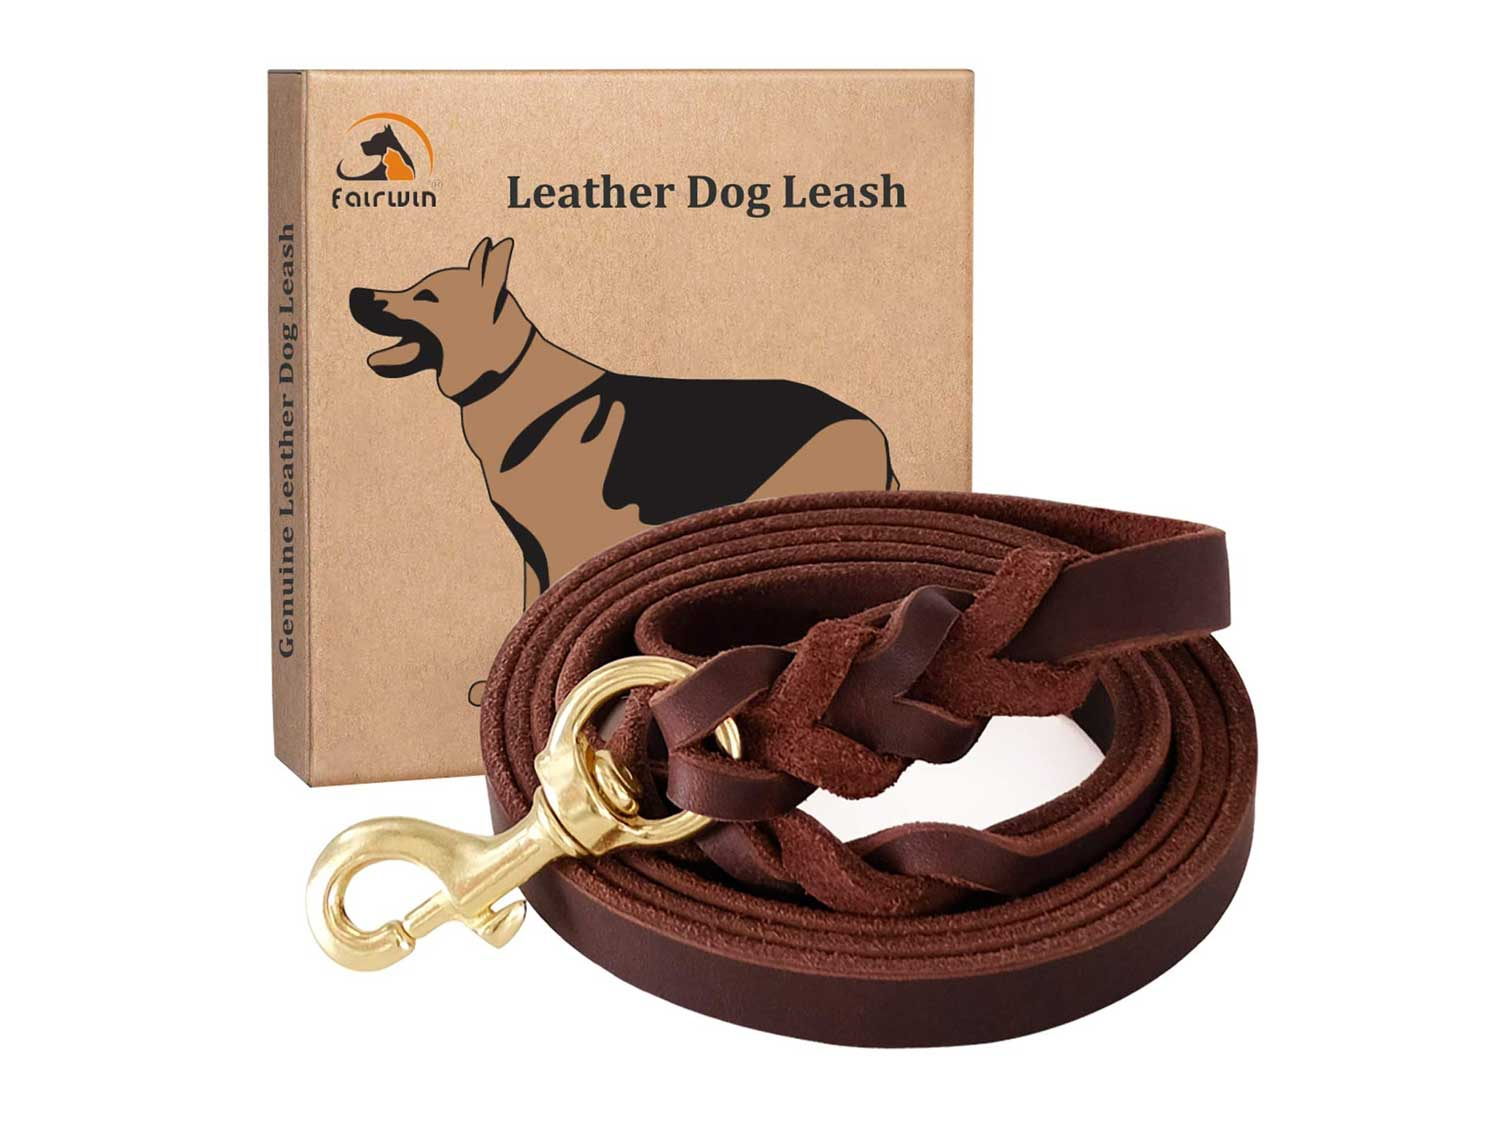 Fairwin Leather Dog Leash 6 Foot - Braided Best Military Grade Heavy Duty Dog Leash for Large Medium Small Dogs Training and Walking